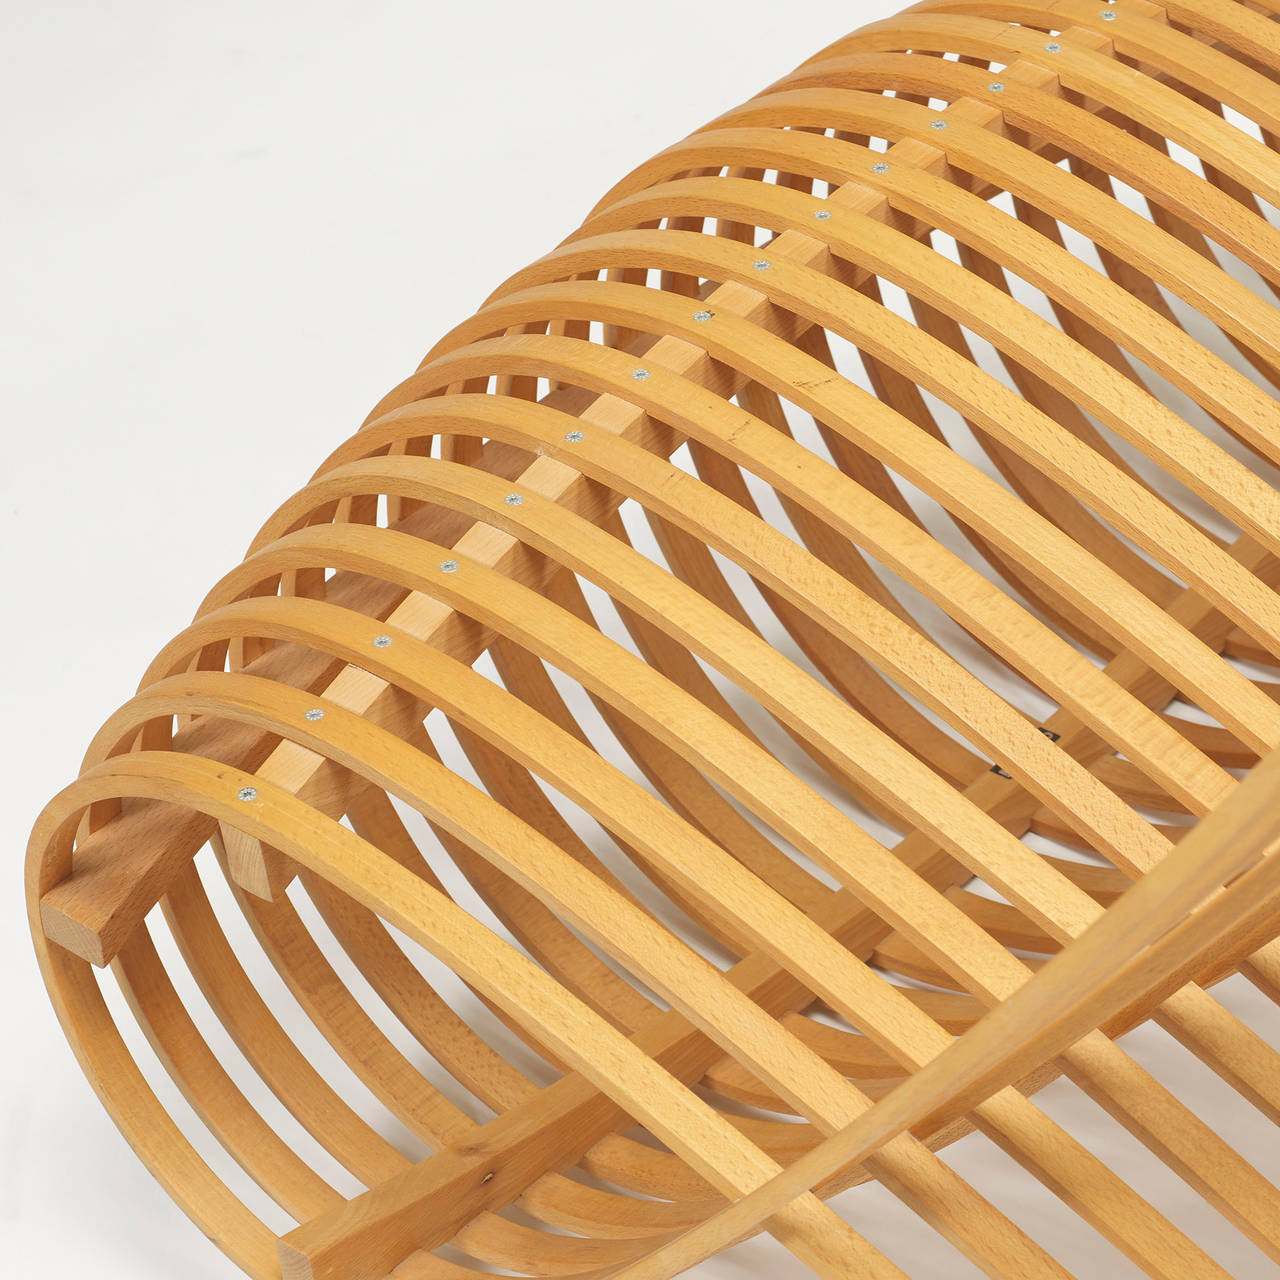 wooden chair by marc newson for cappellini for sale at 1stdibs